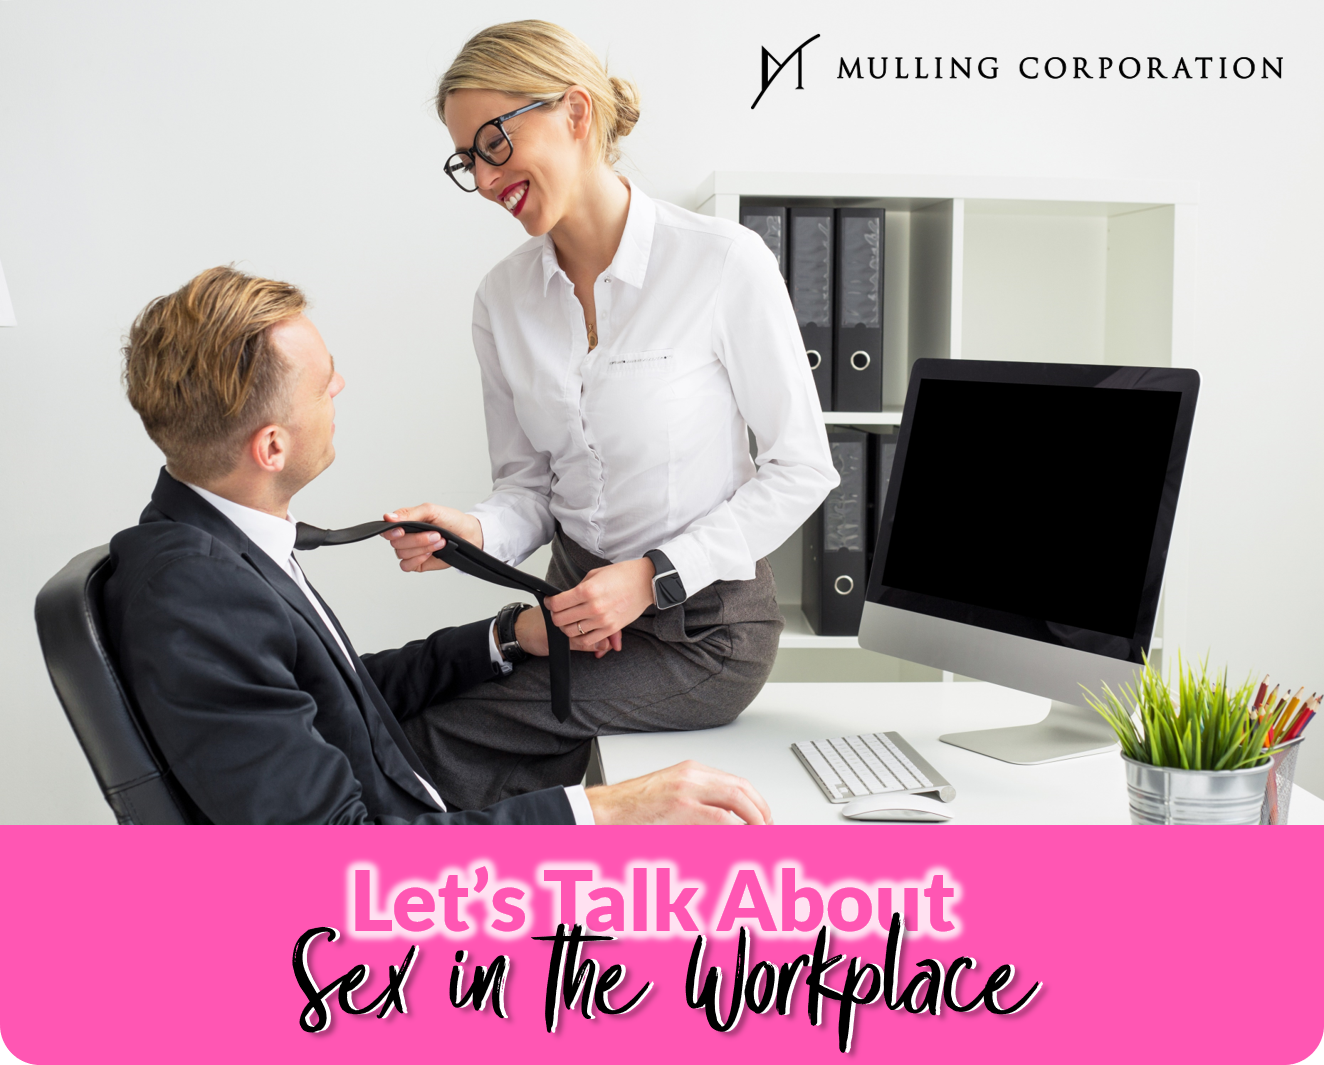 Sex in the Workplace: 3 Ways It May Impact You